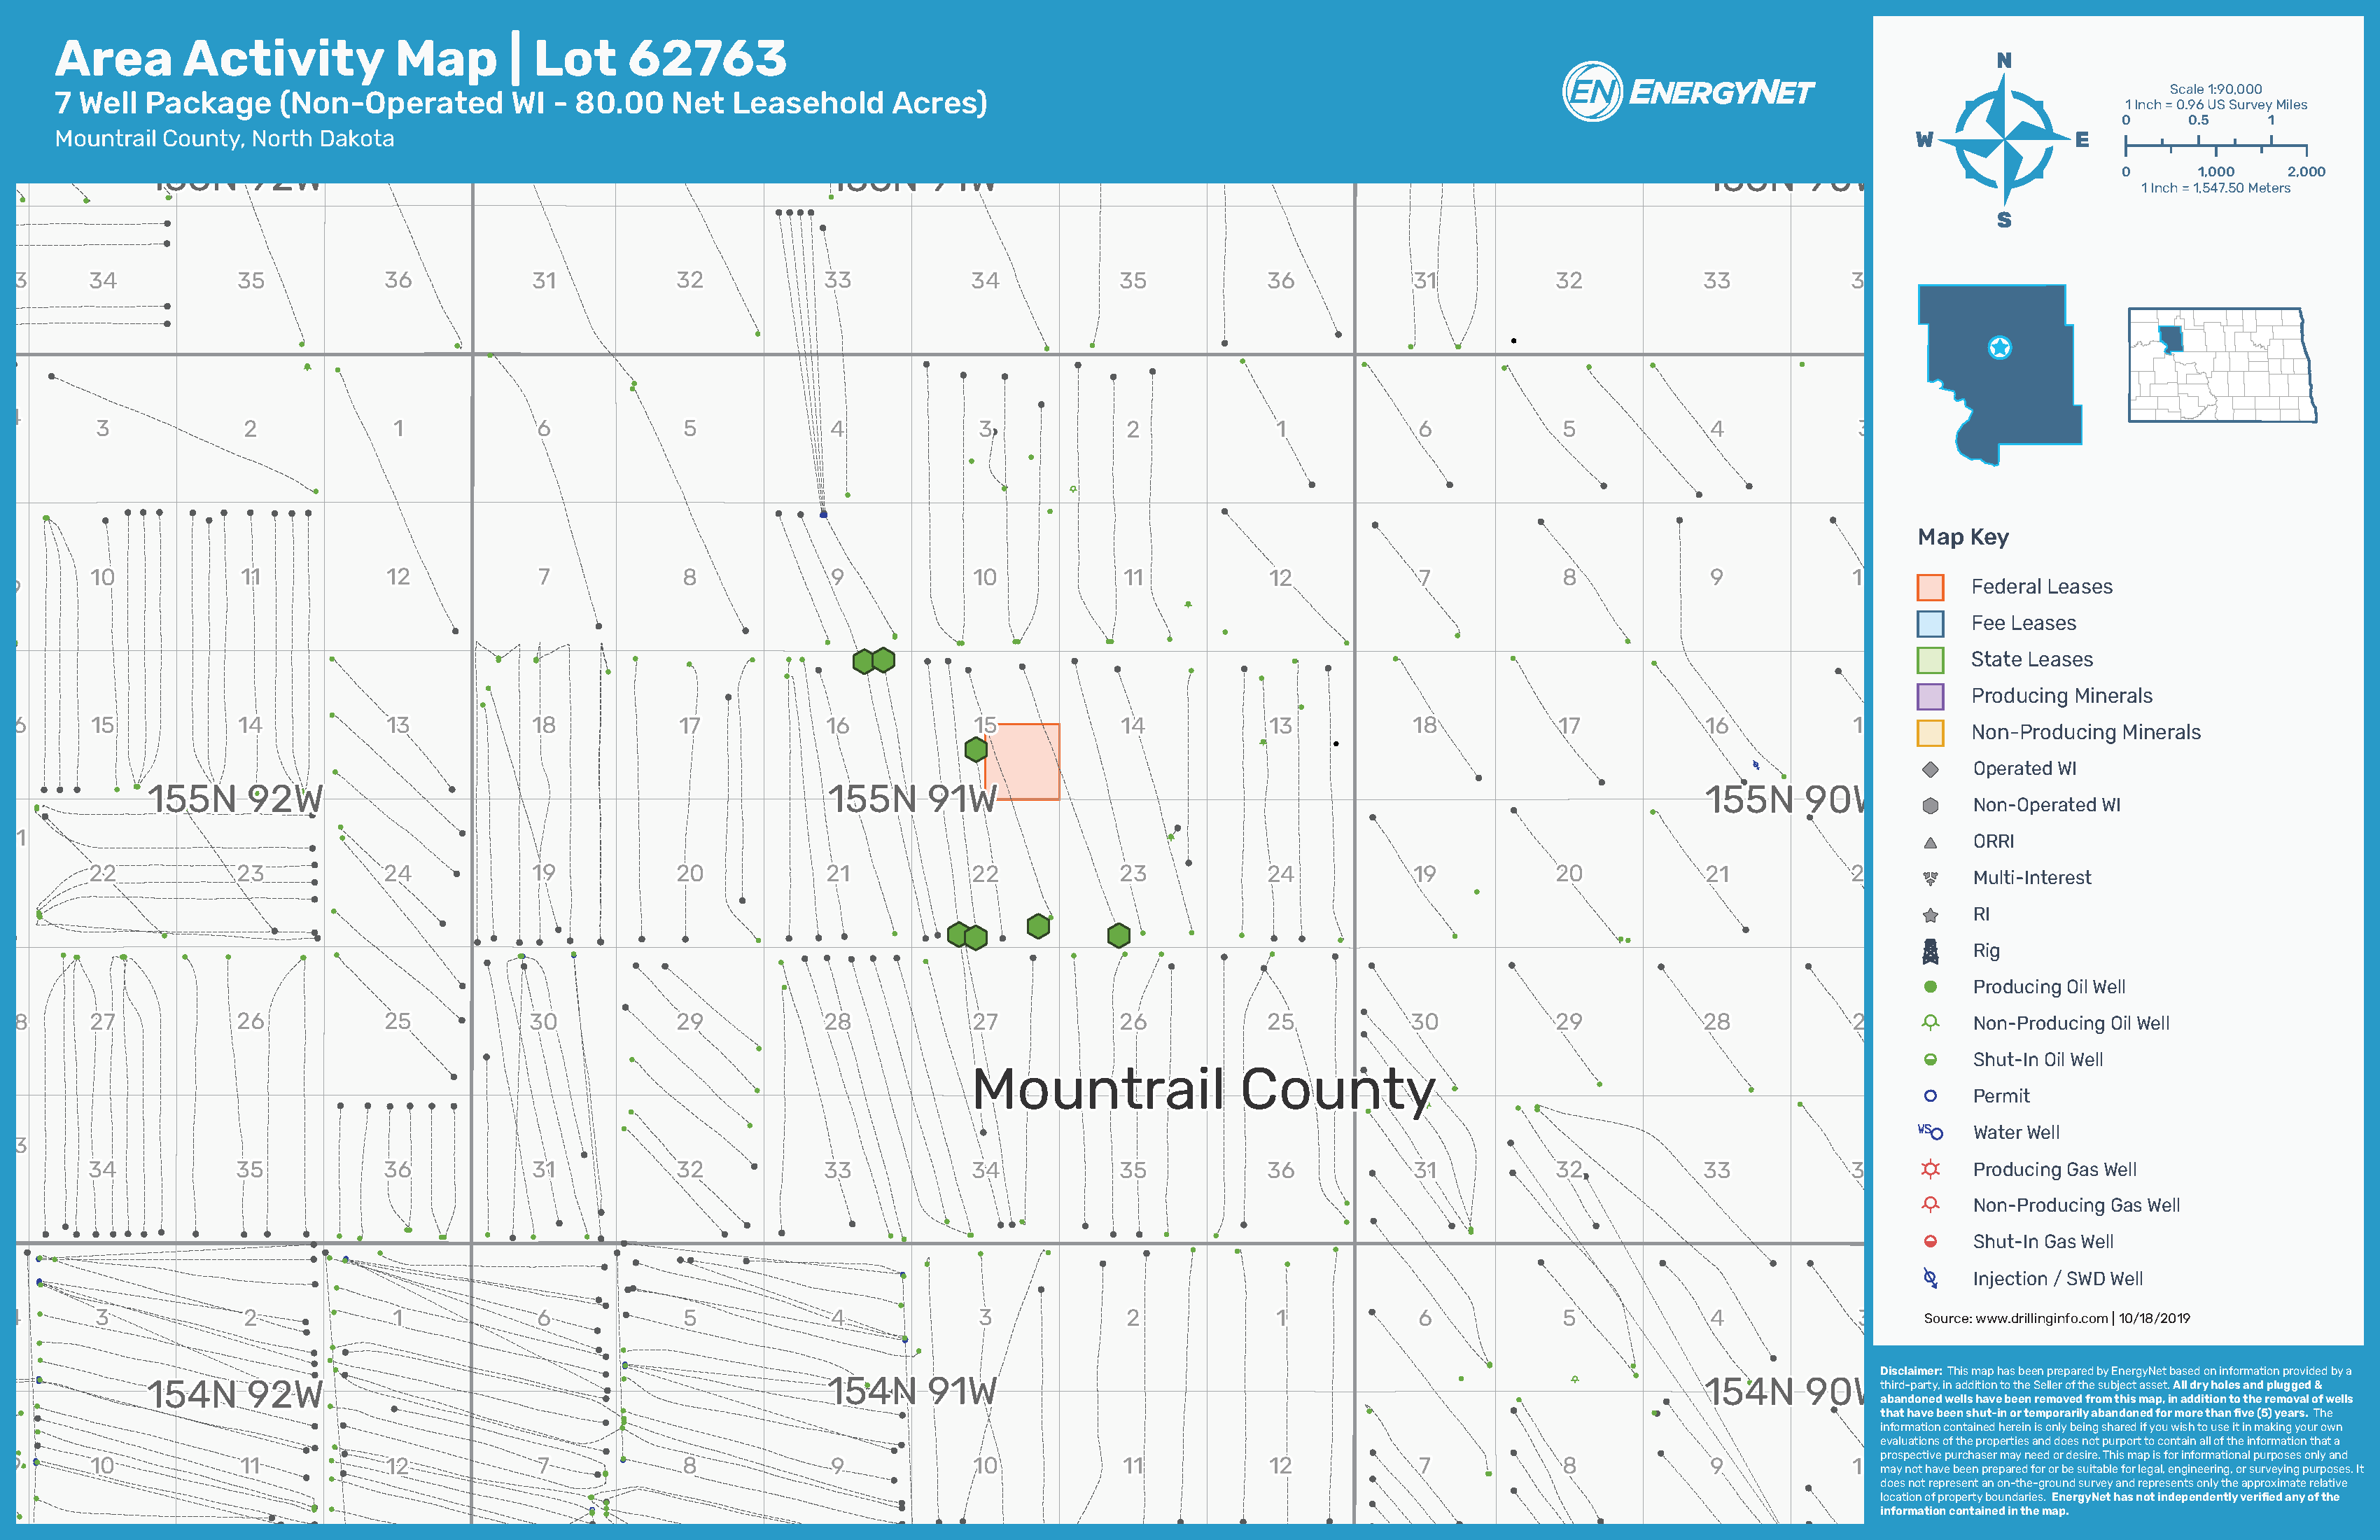 Salt Creek Oil and Gas Lot 62763 Asset Map, Bakken Shale, Mountrail County, North Dakota (Source: EnergyNet)